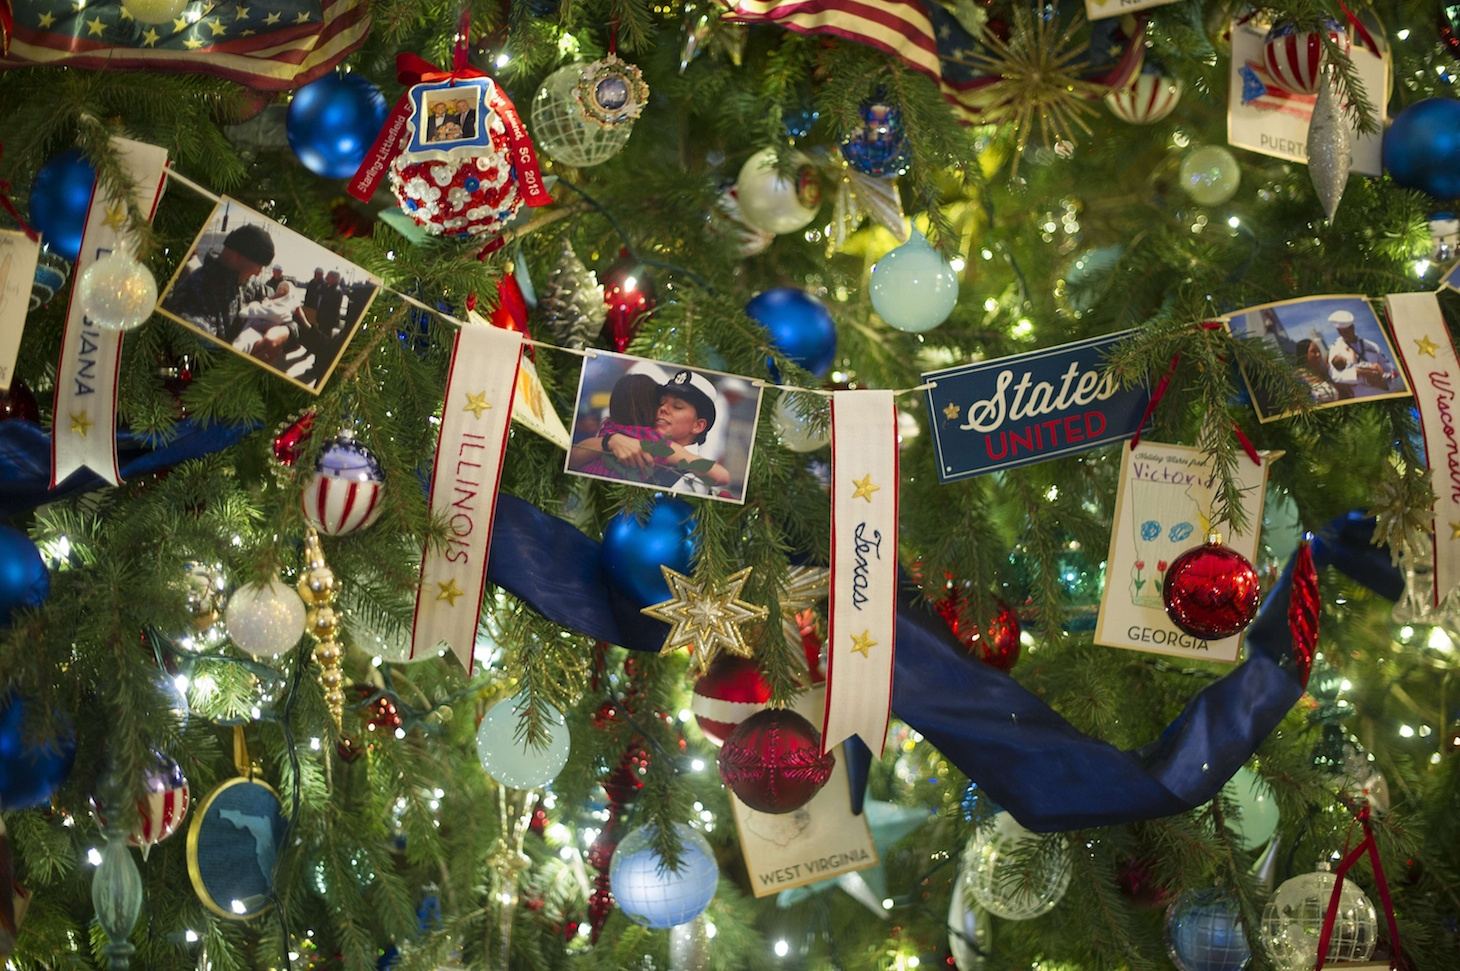 Decorations honoring military families hang upon the